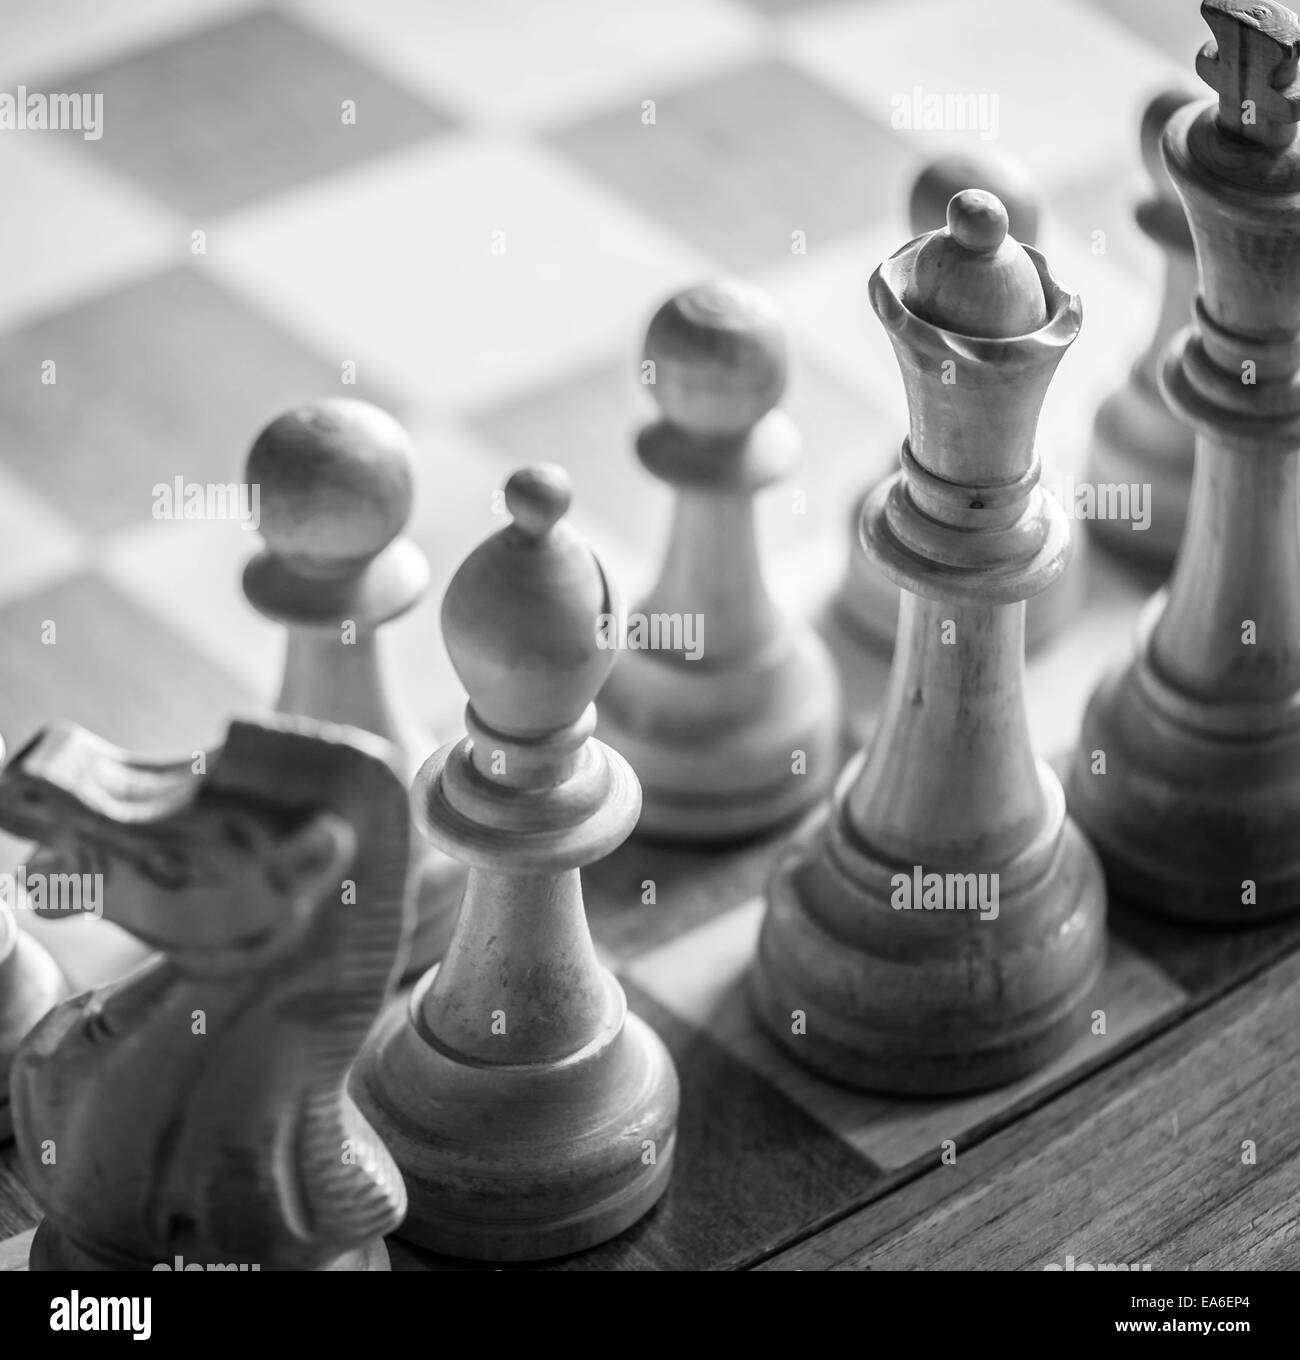 Chess board - Stock Image